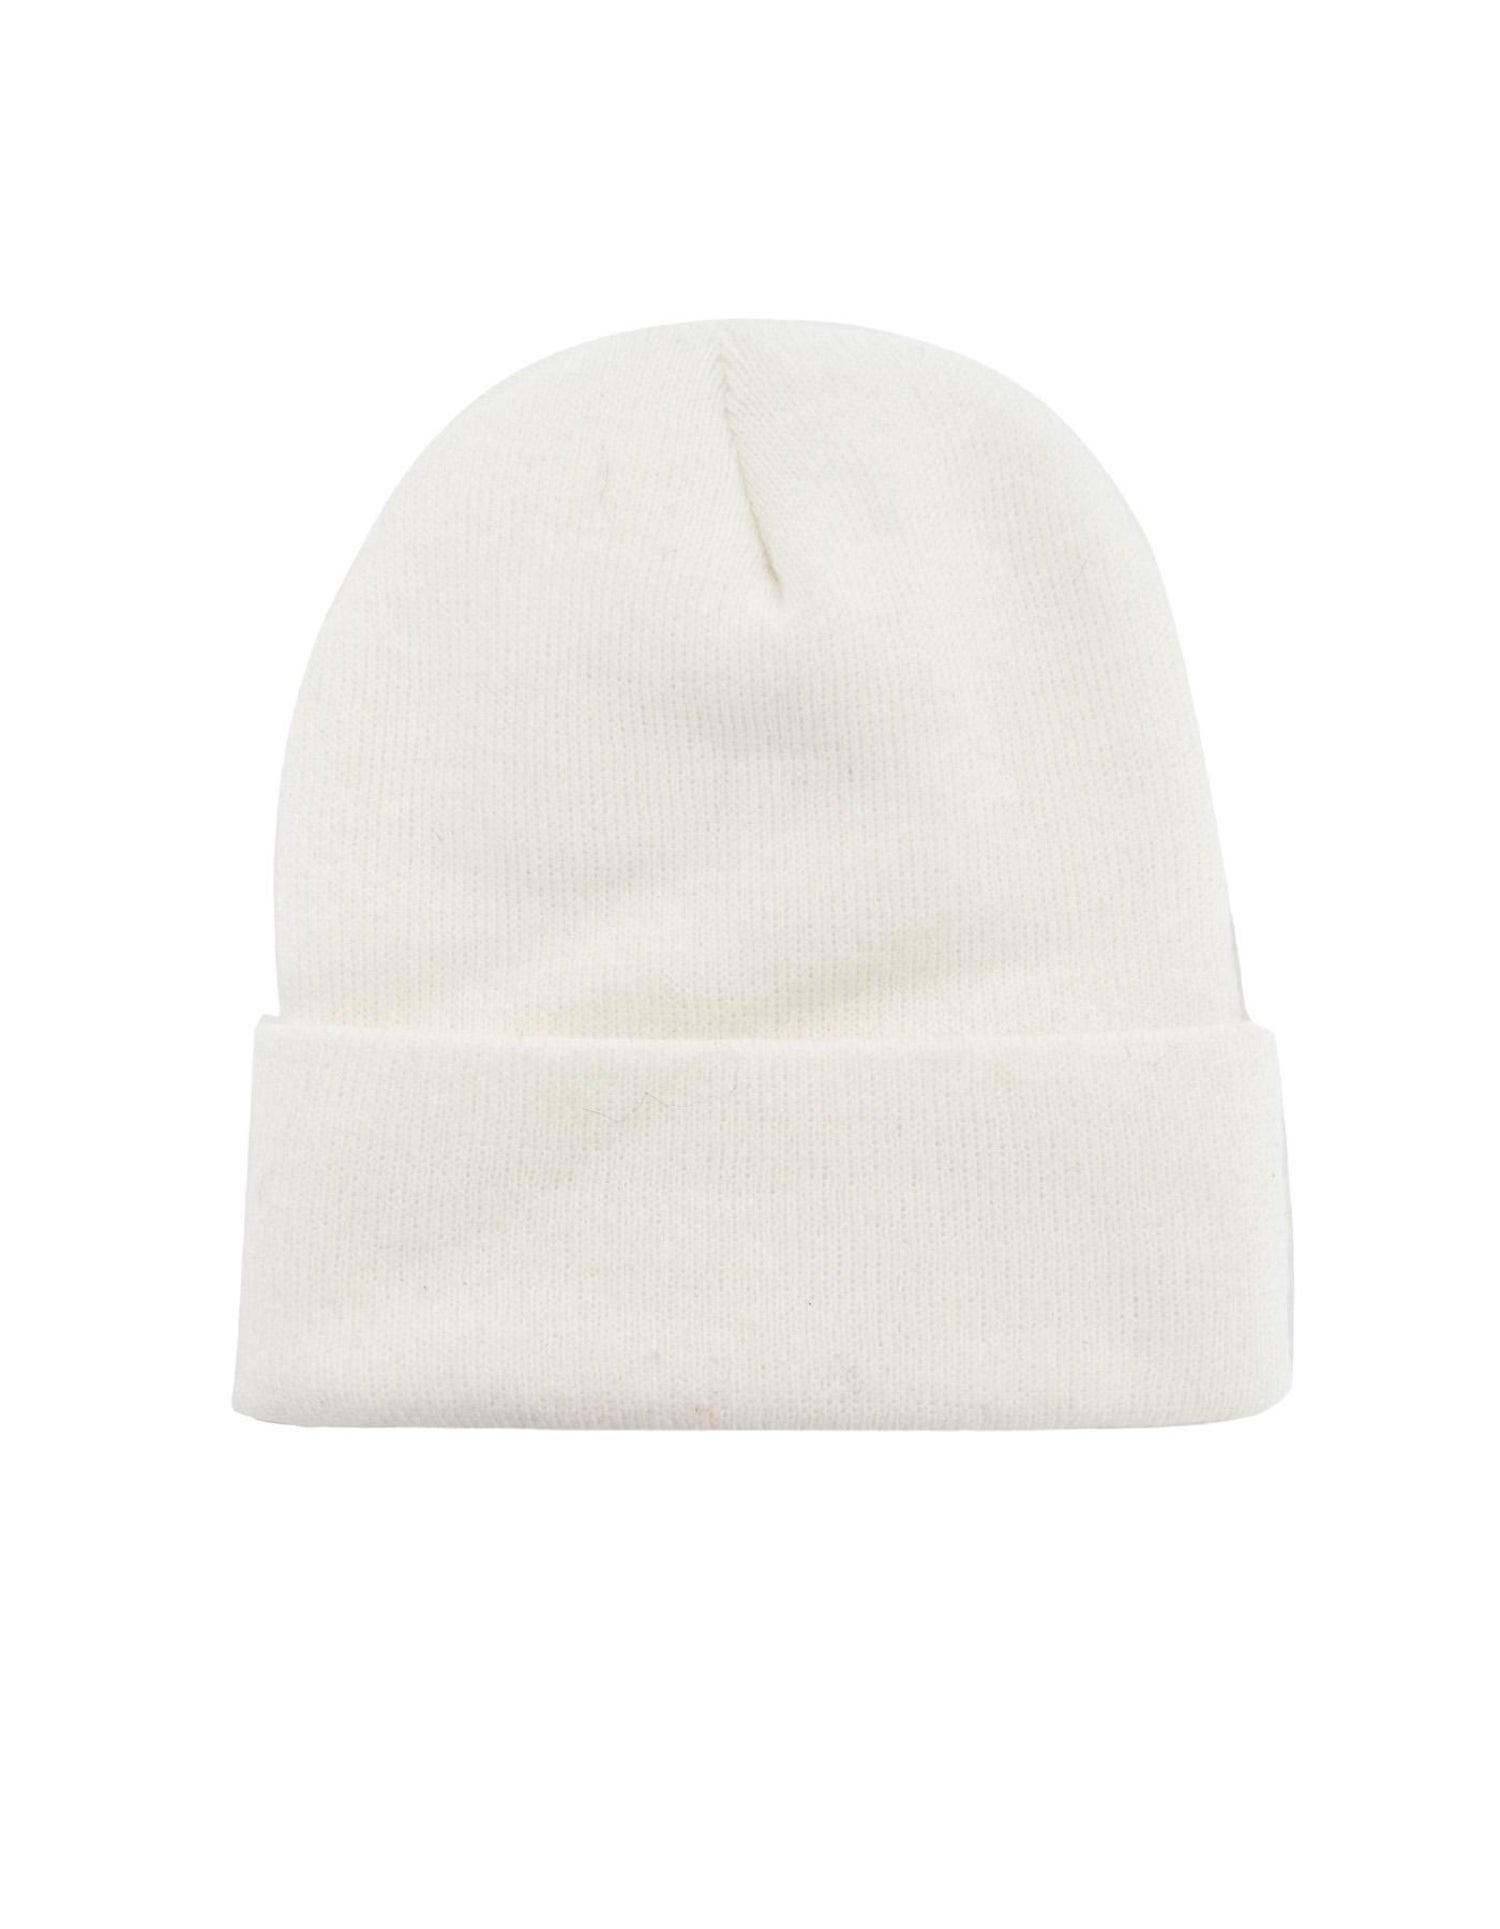 7bc54b17f46 Chrome Hearts x Bella Hadid Limited Edition White Beanie Hat OS For Sale at  1stdibs